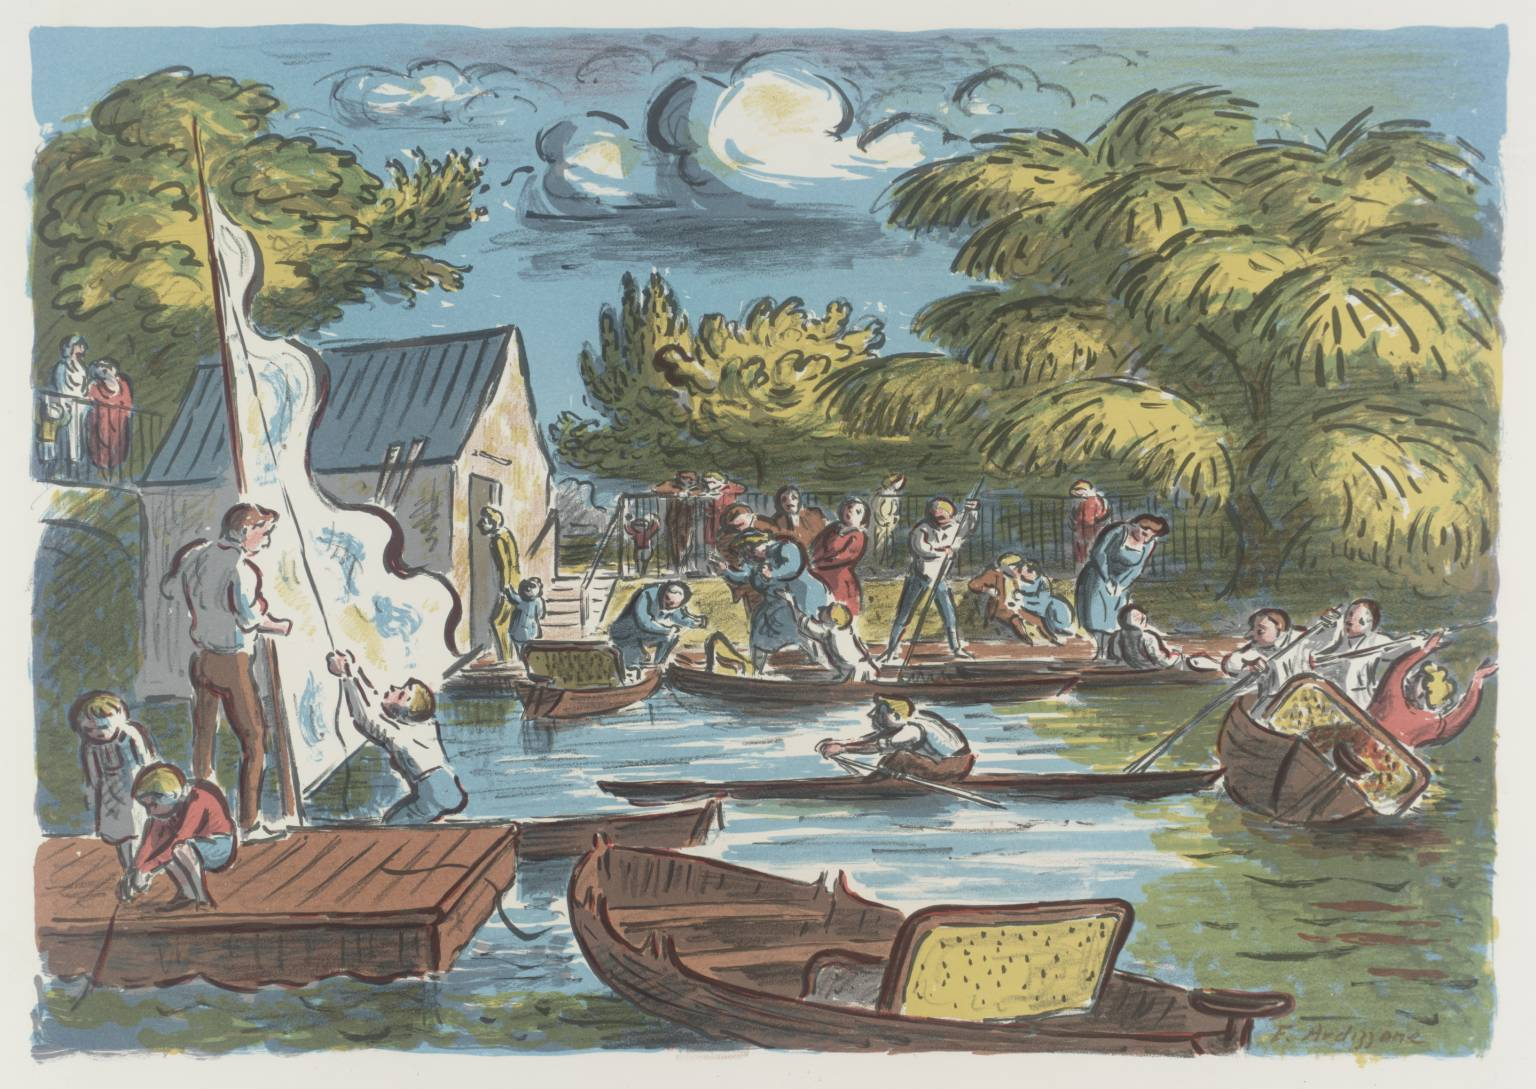 Boating Pond 1961 by Edward Ardizzone 1900-1979